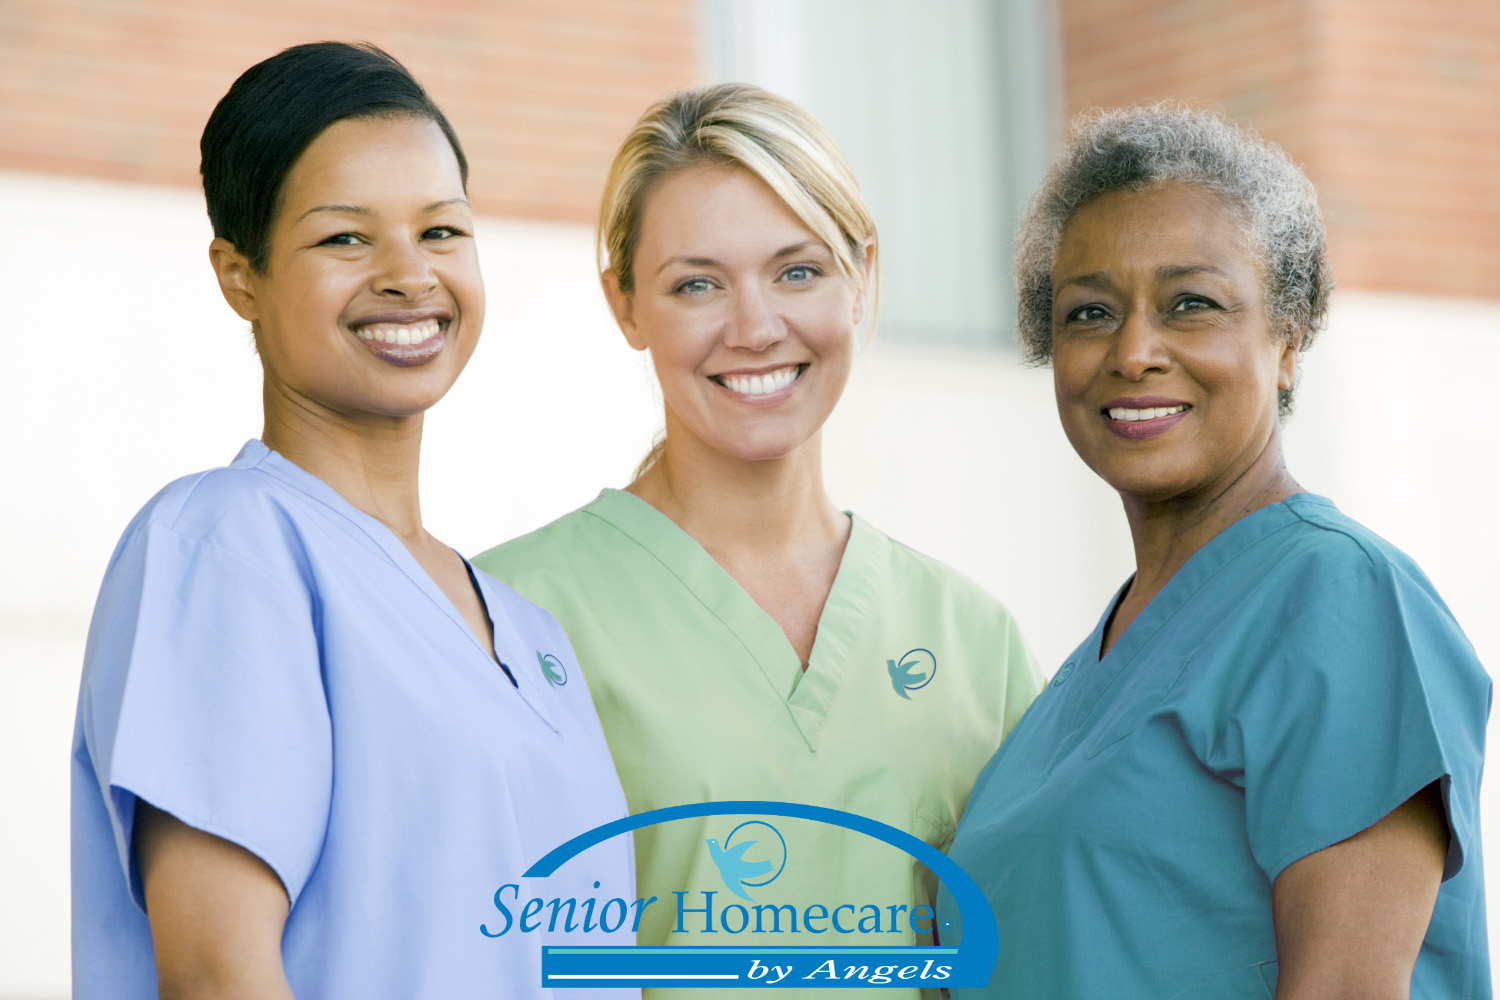 Homecare Jobs